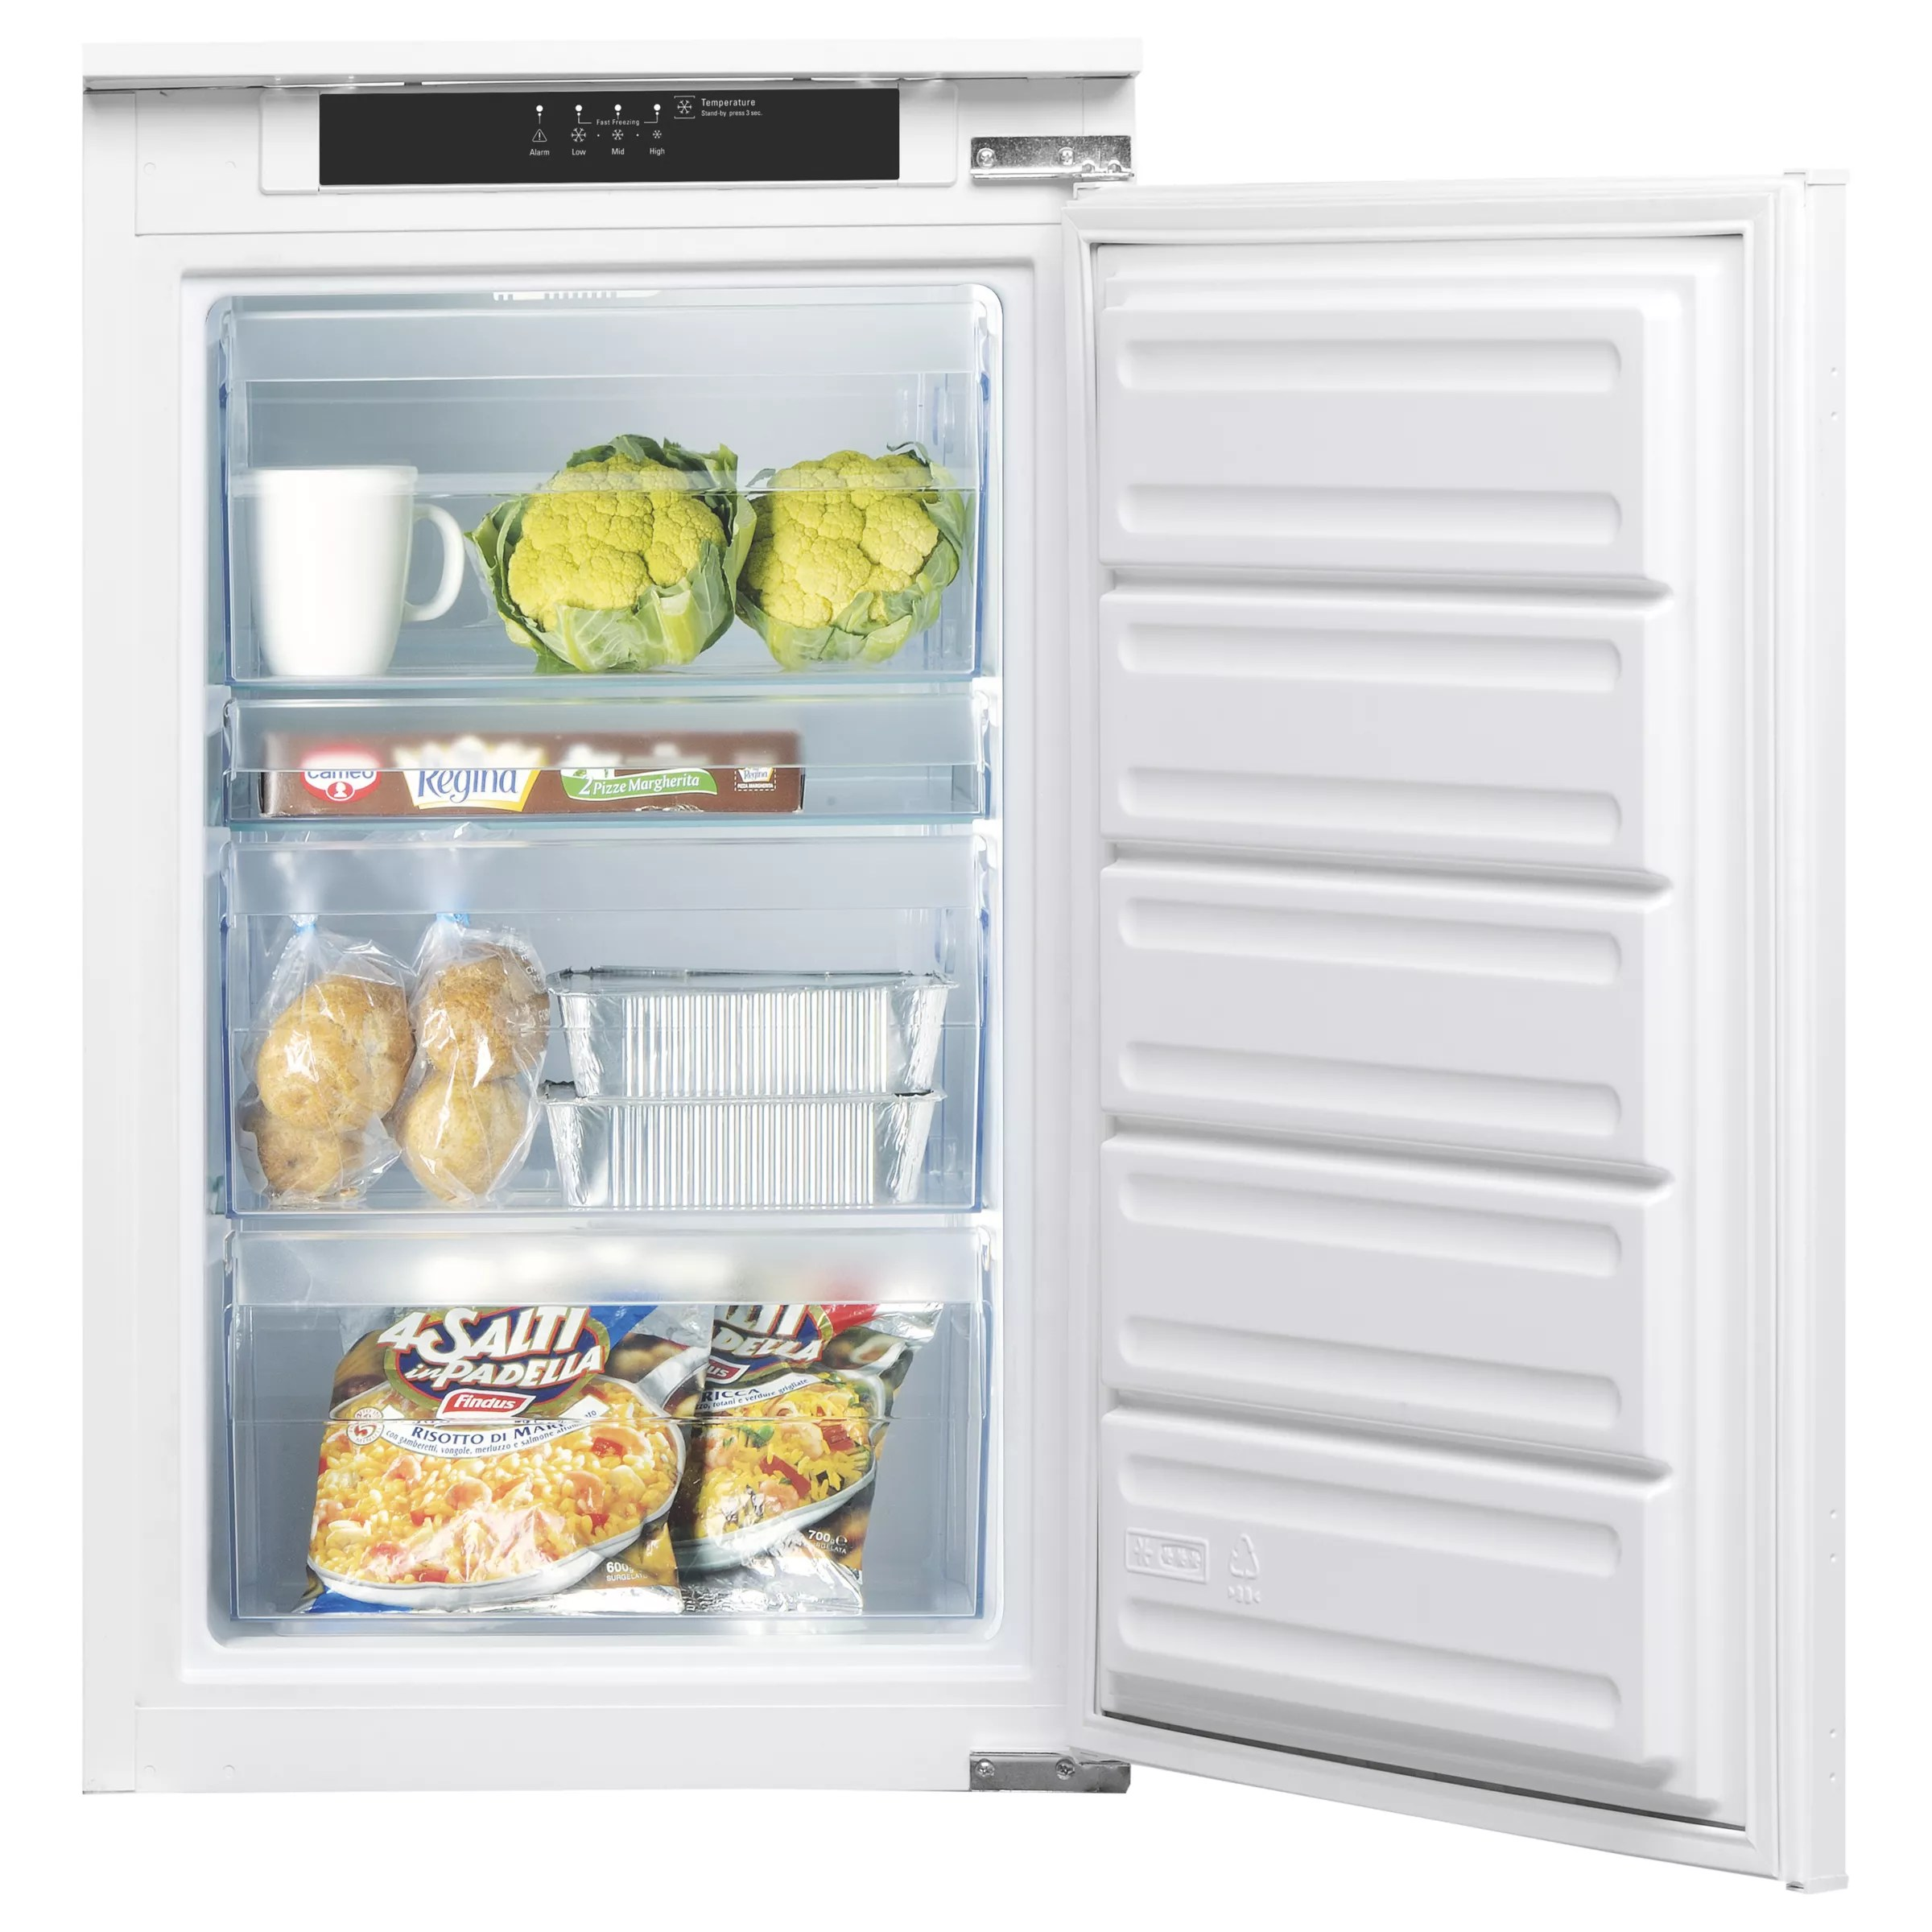 hight resolution of buy indesit inf901eaa integrated undercounter fridge a energy rating 54cm wide online at johnlewis